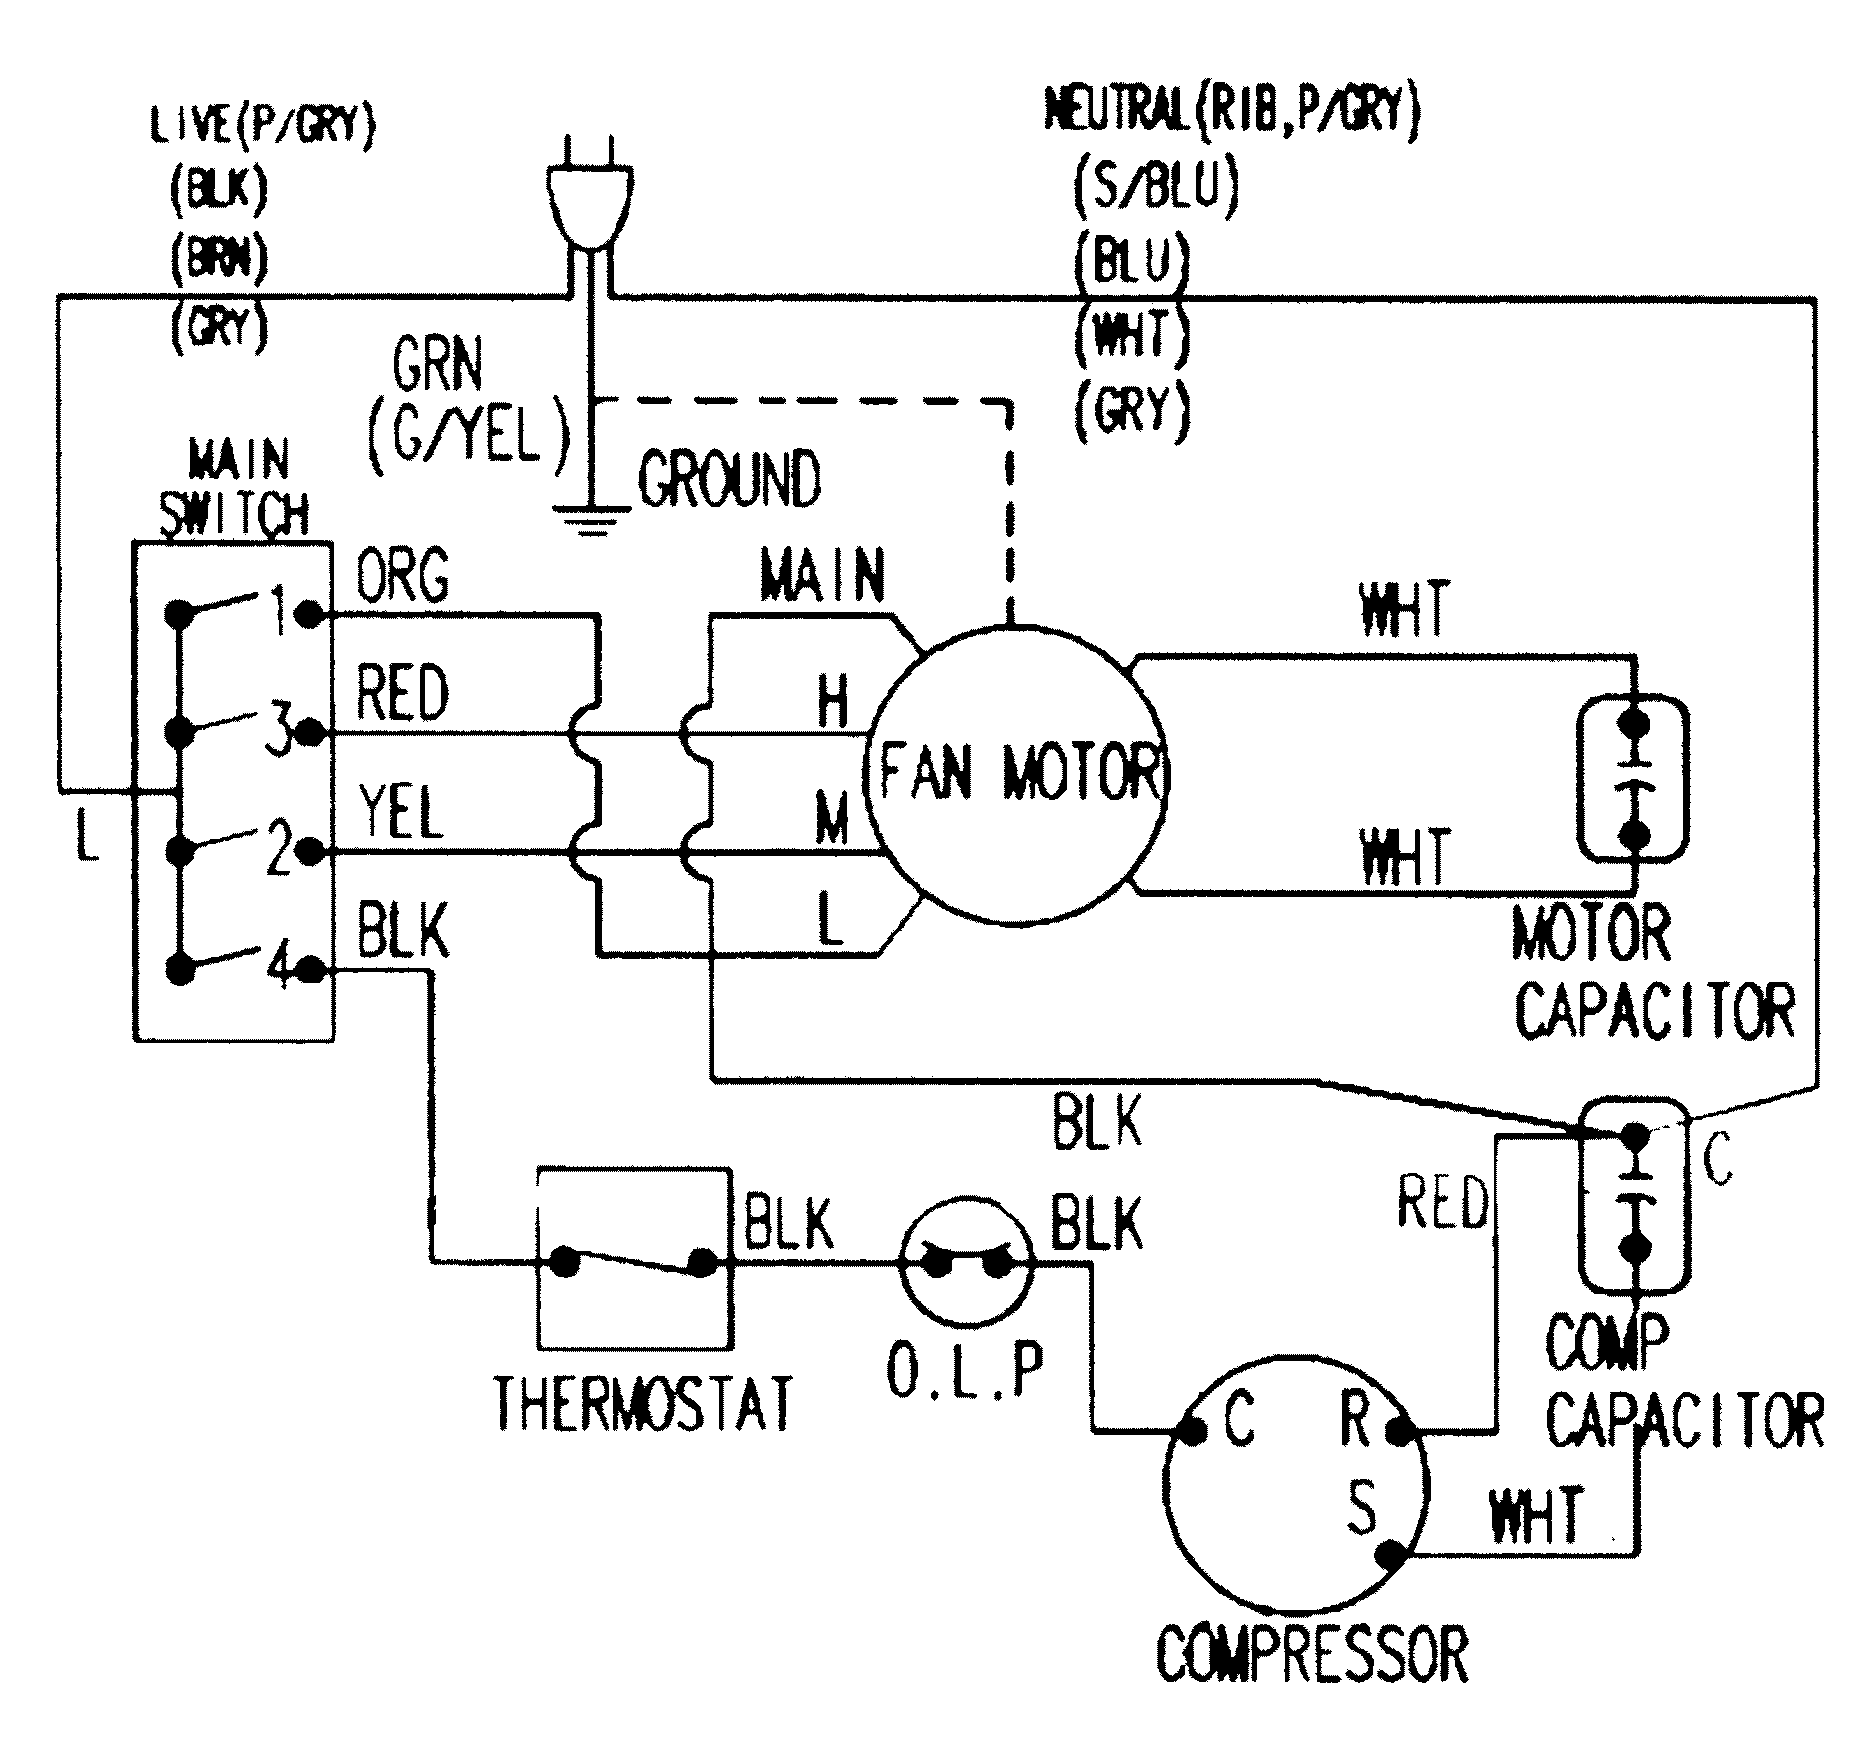 trane rooftop unit wiring diagrams